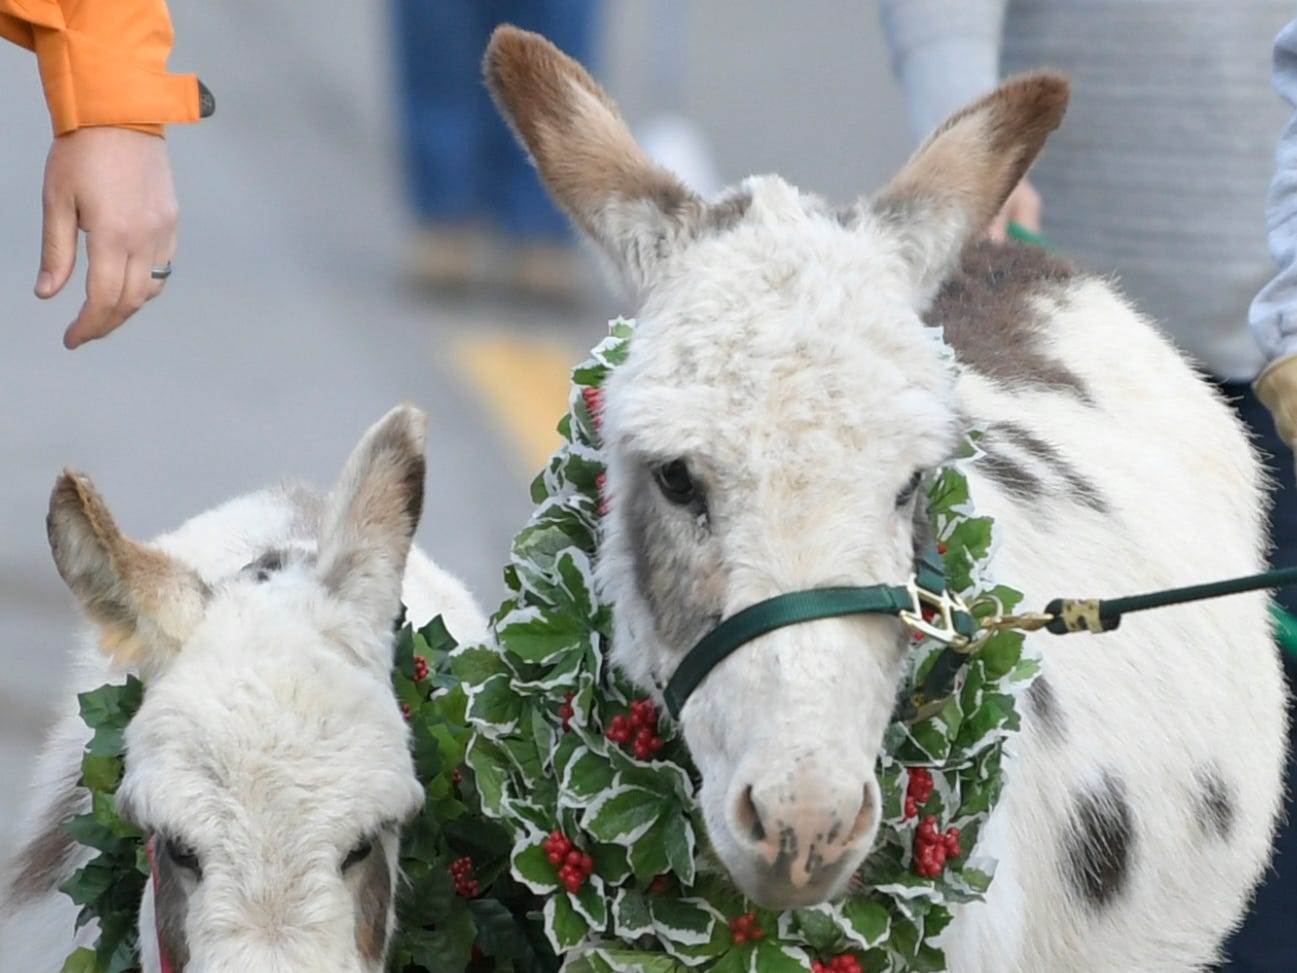 Donkeys were part of the Leiper's Fork Christmas Parade on Saturday, Dec. 15, 2018.